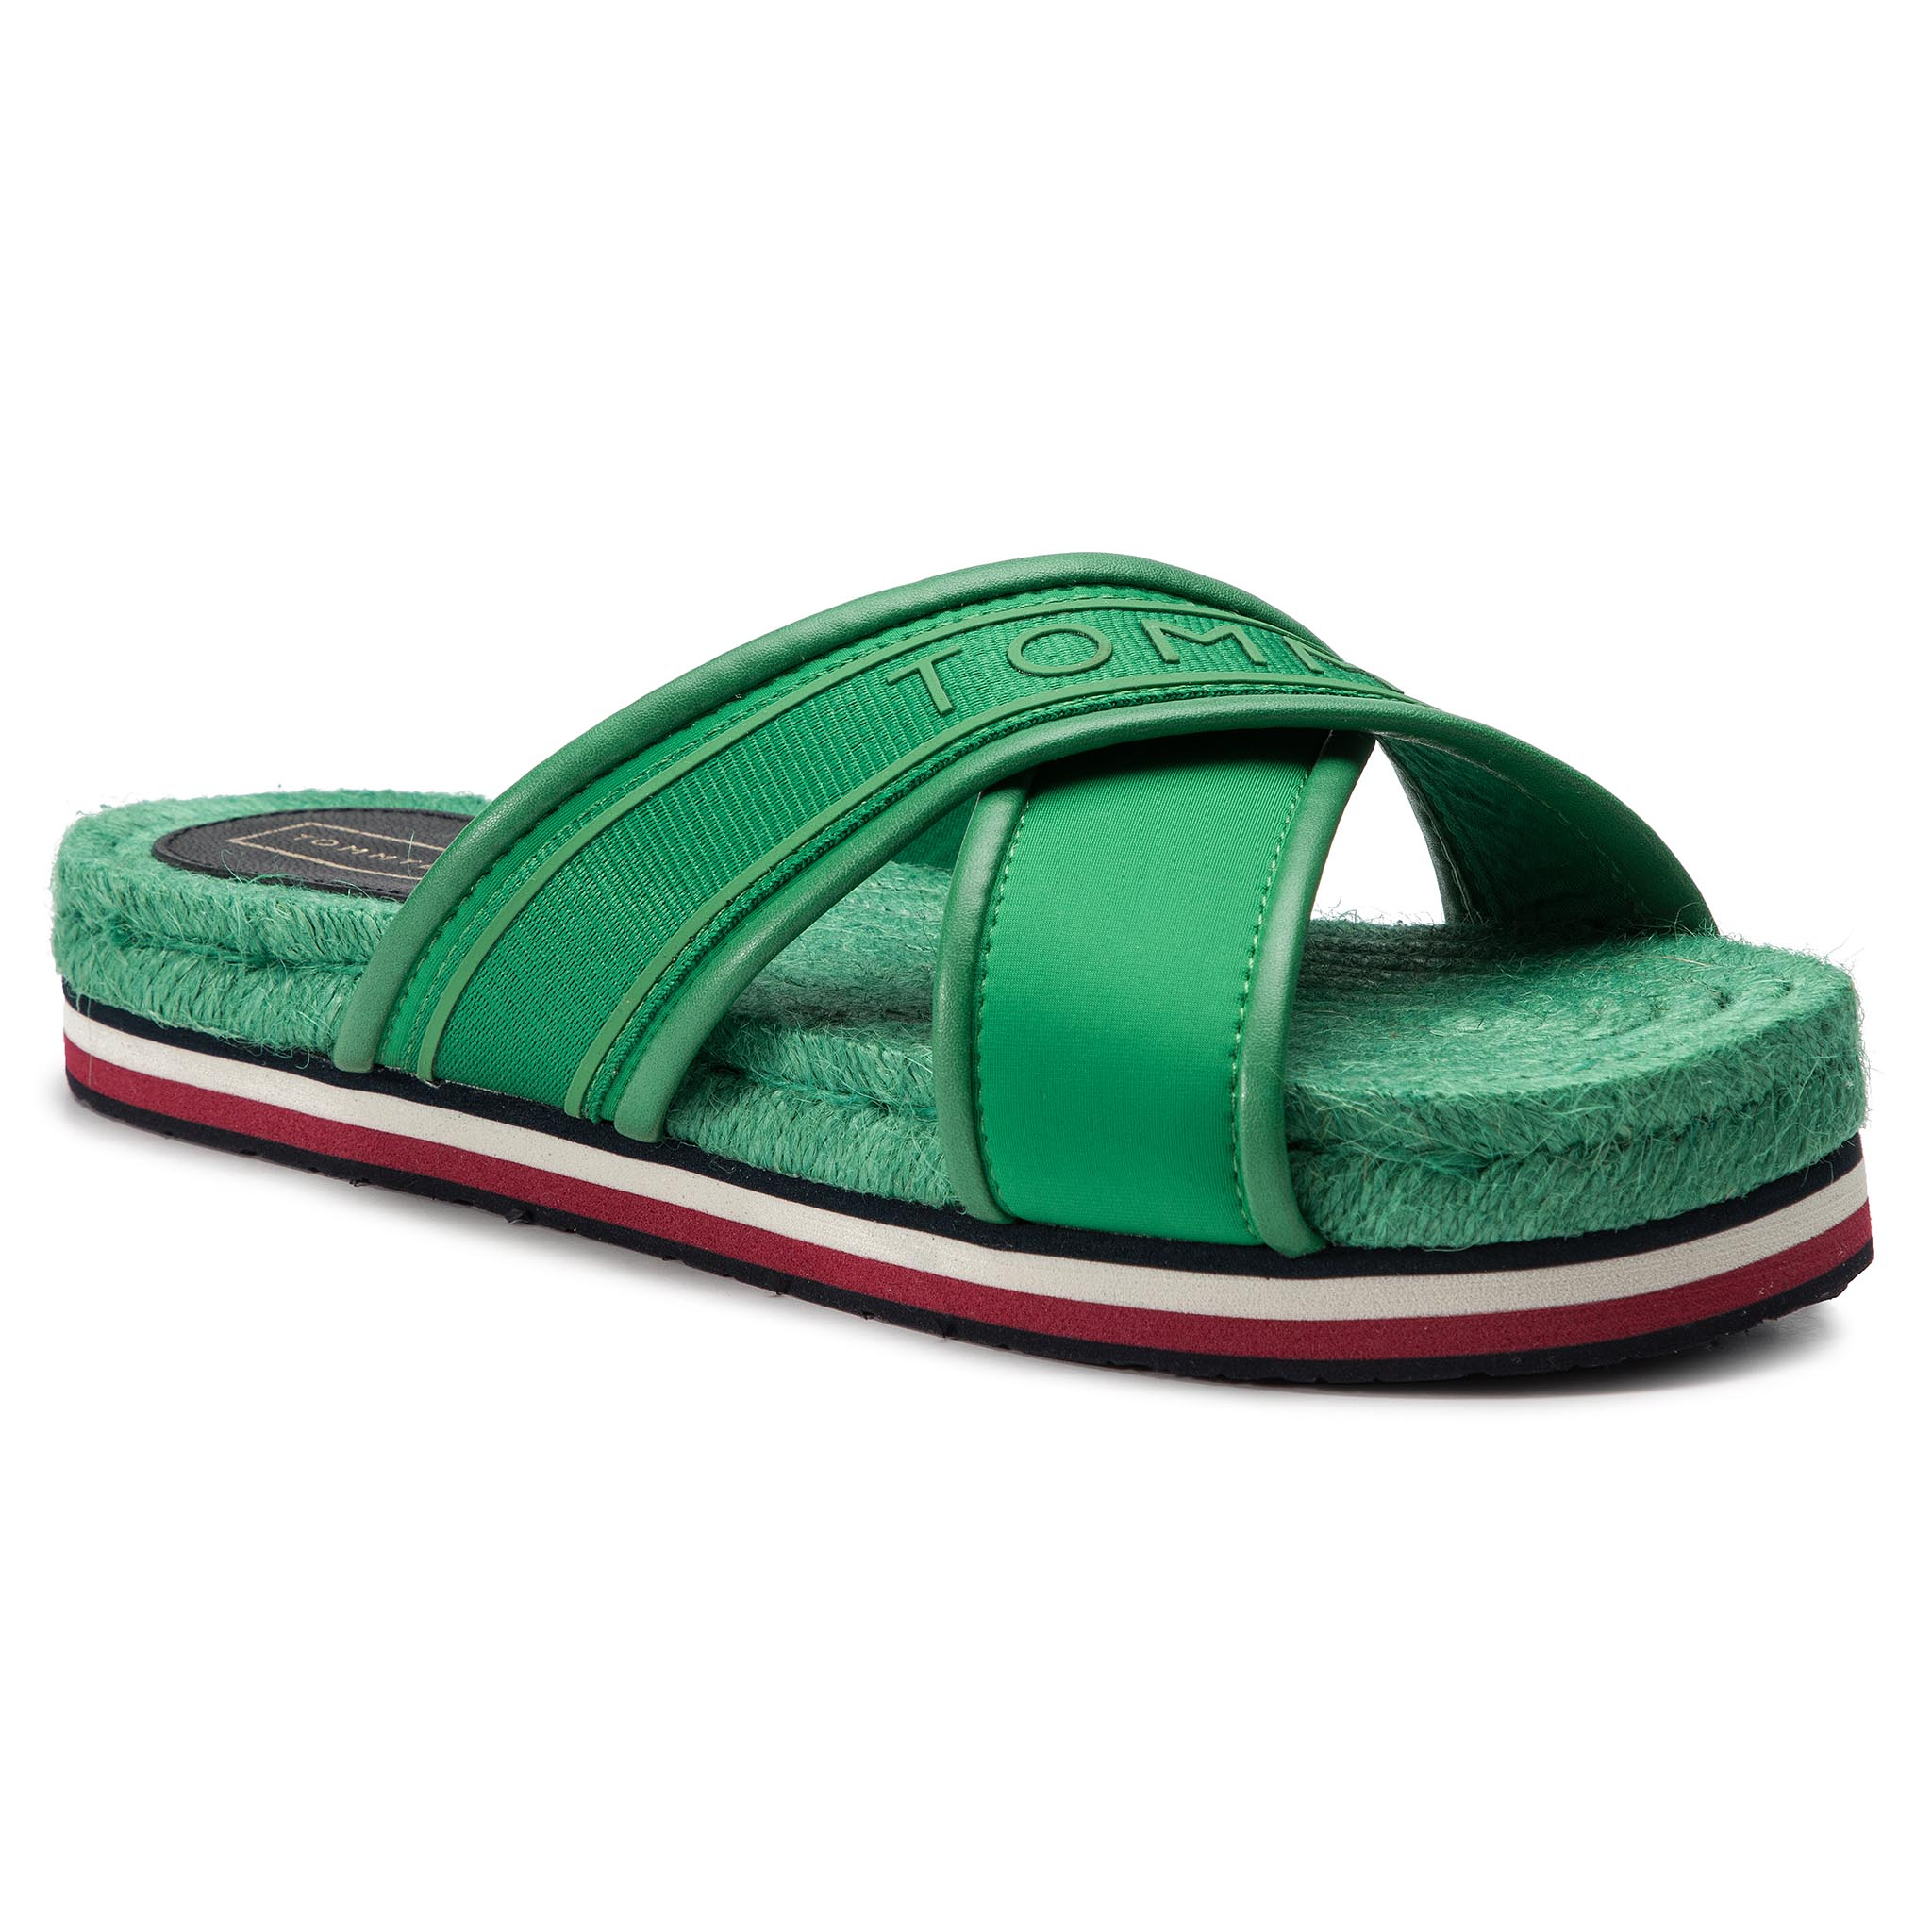 Espadrile TOMMY HILFIGER - Colorful Tommy Flat Sandal FW0FW04159 Jelly Bean 321